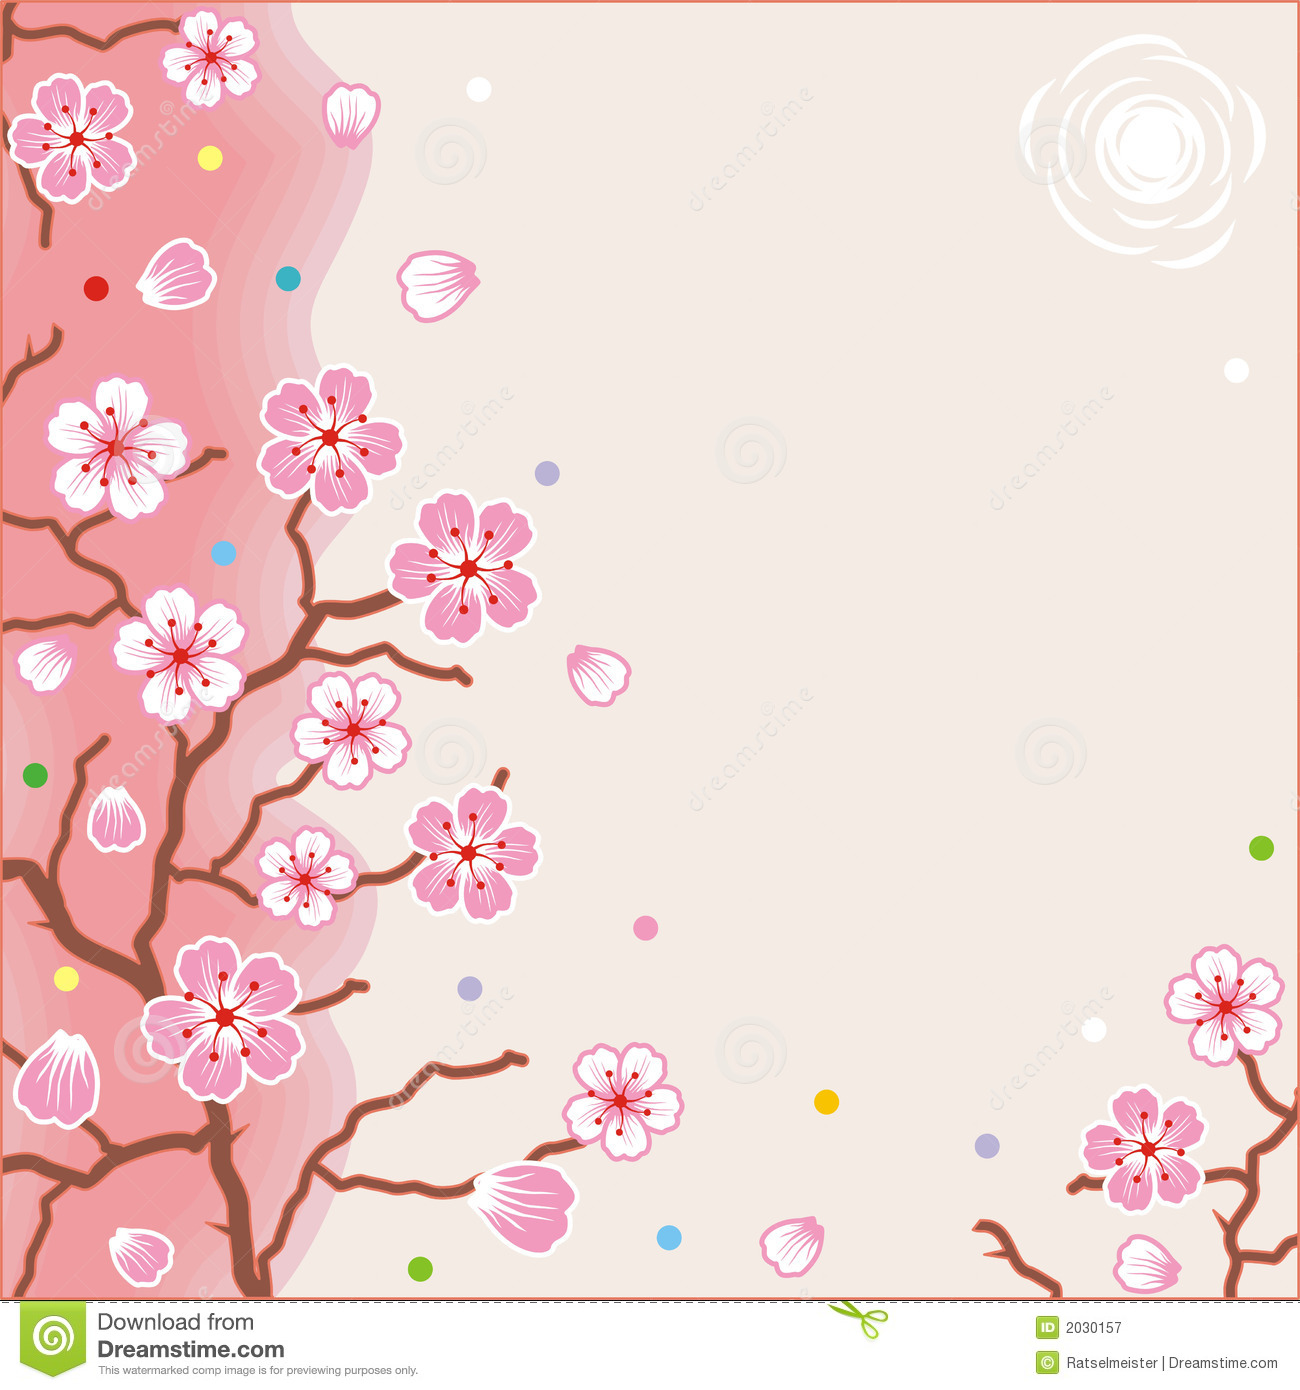 Falling Glitter Confetti Wallpapers Floral Pattern Spring Background Royalty Free Stock